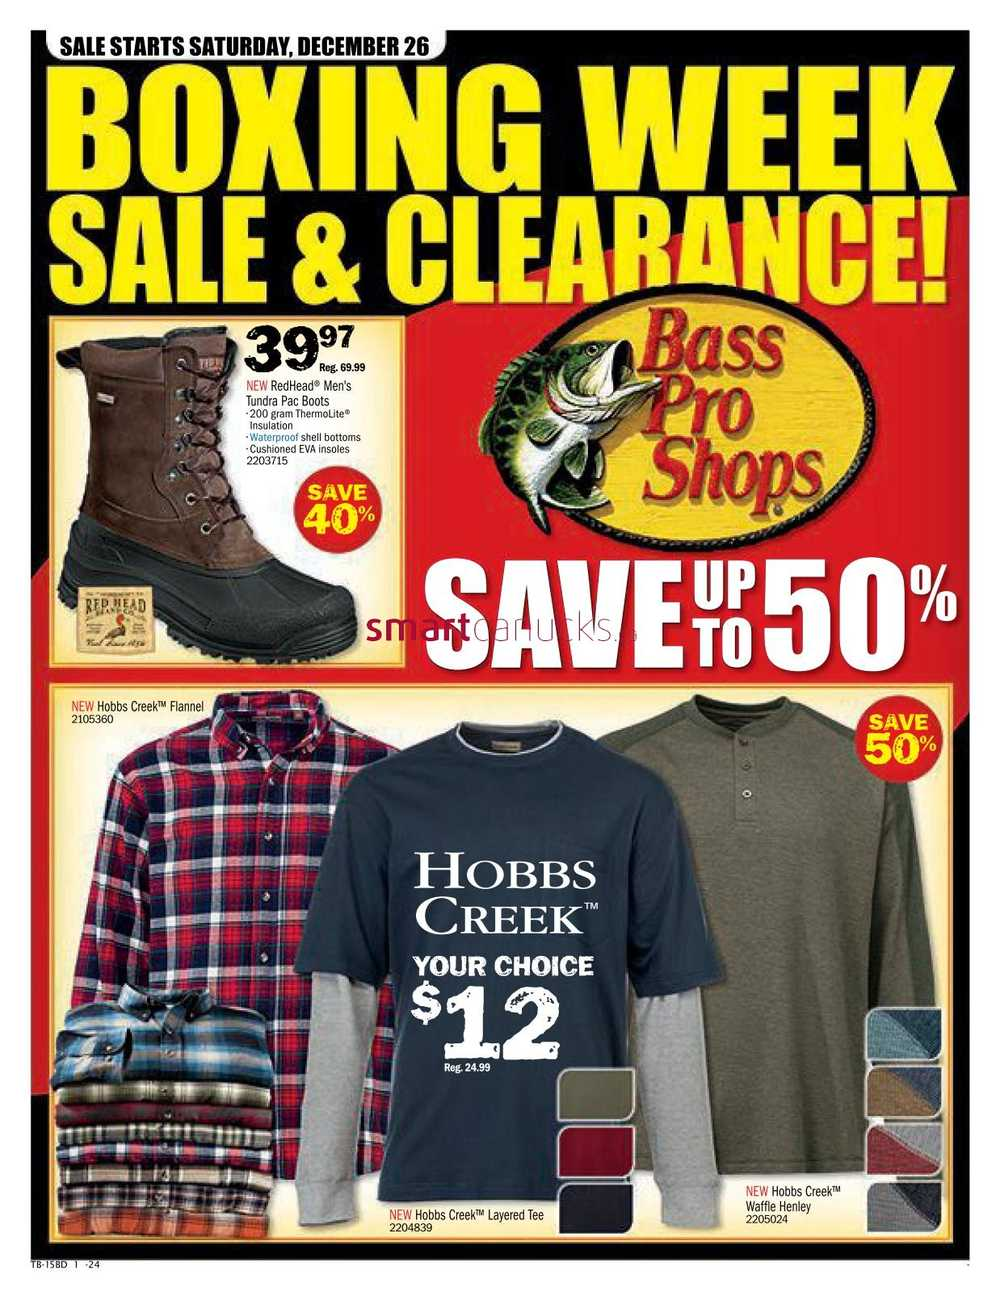 Bass Pro Shops Boxing Week Sale Flyer December 26 to January 3